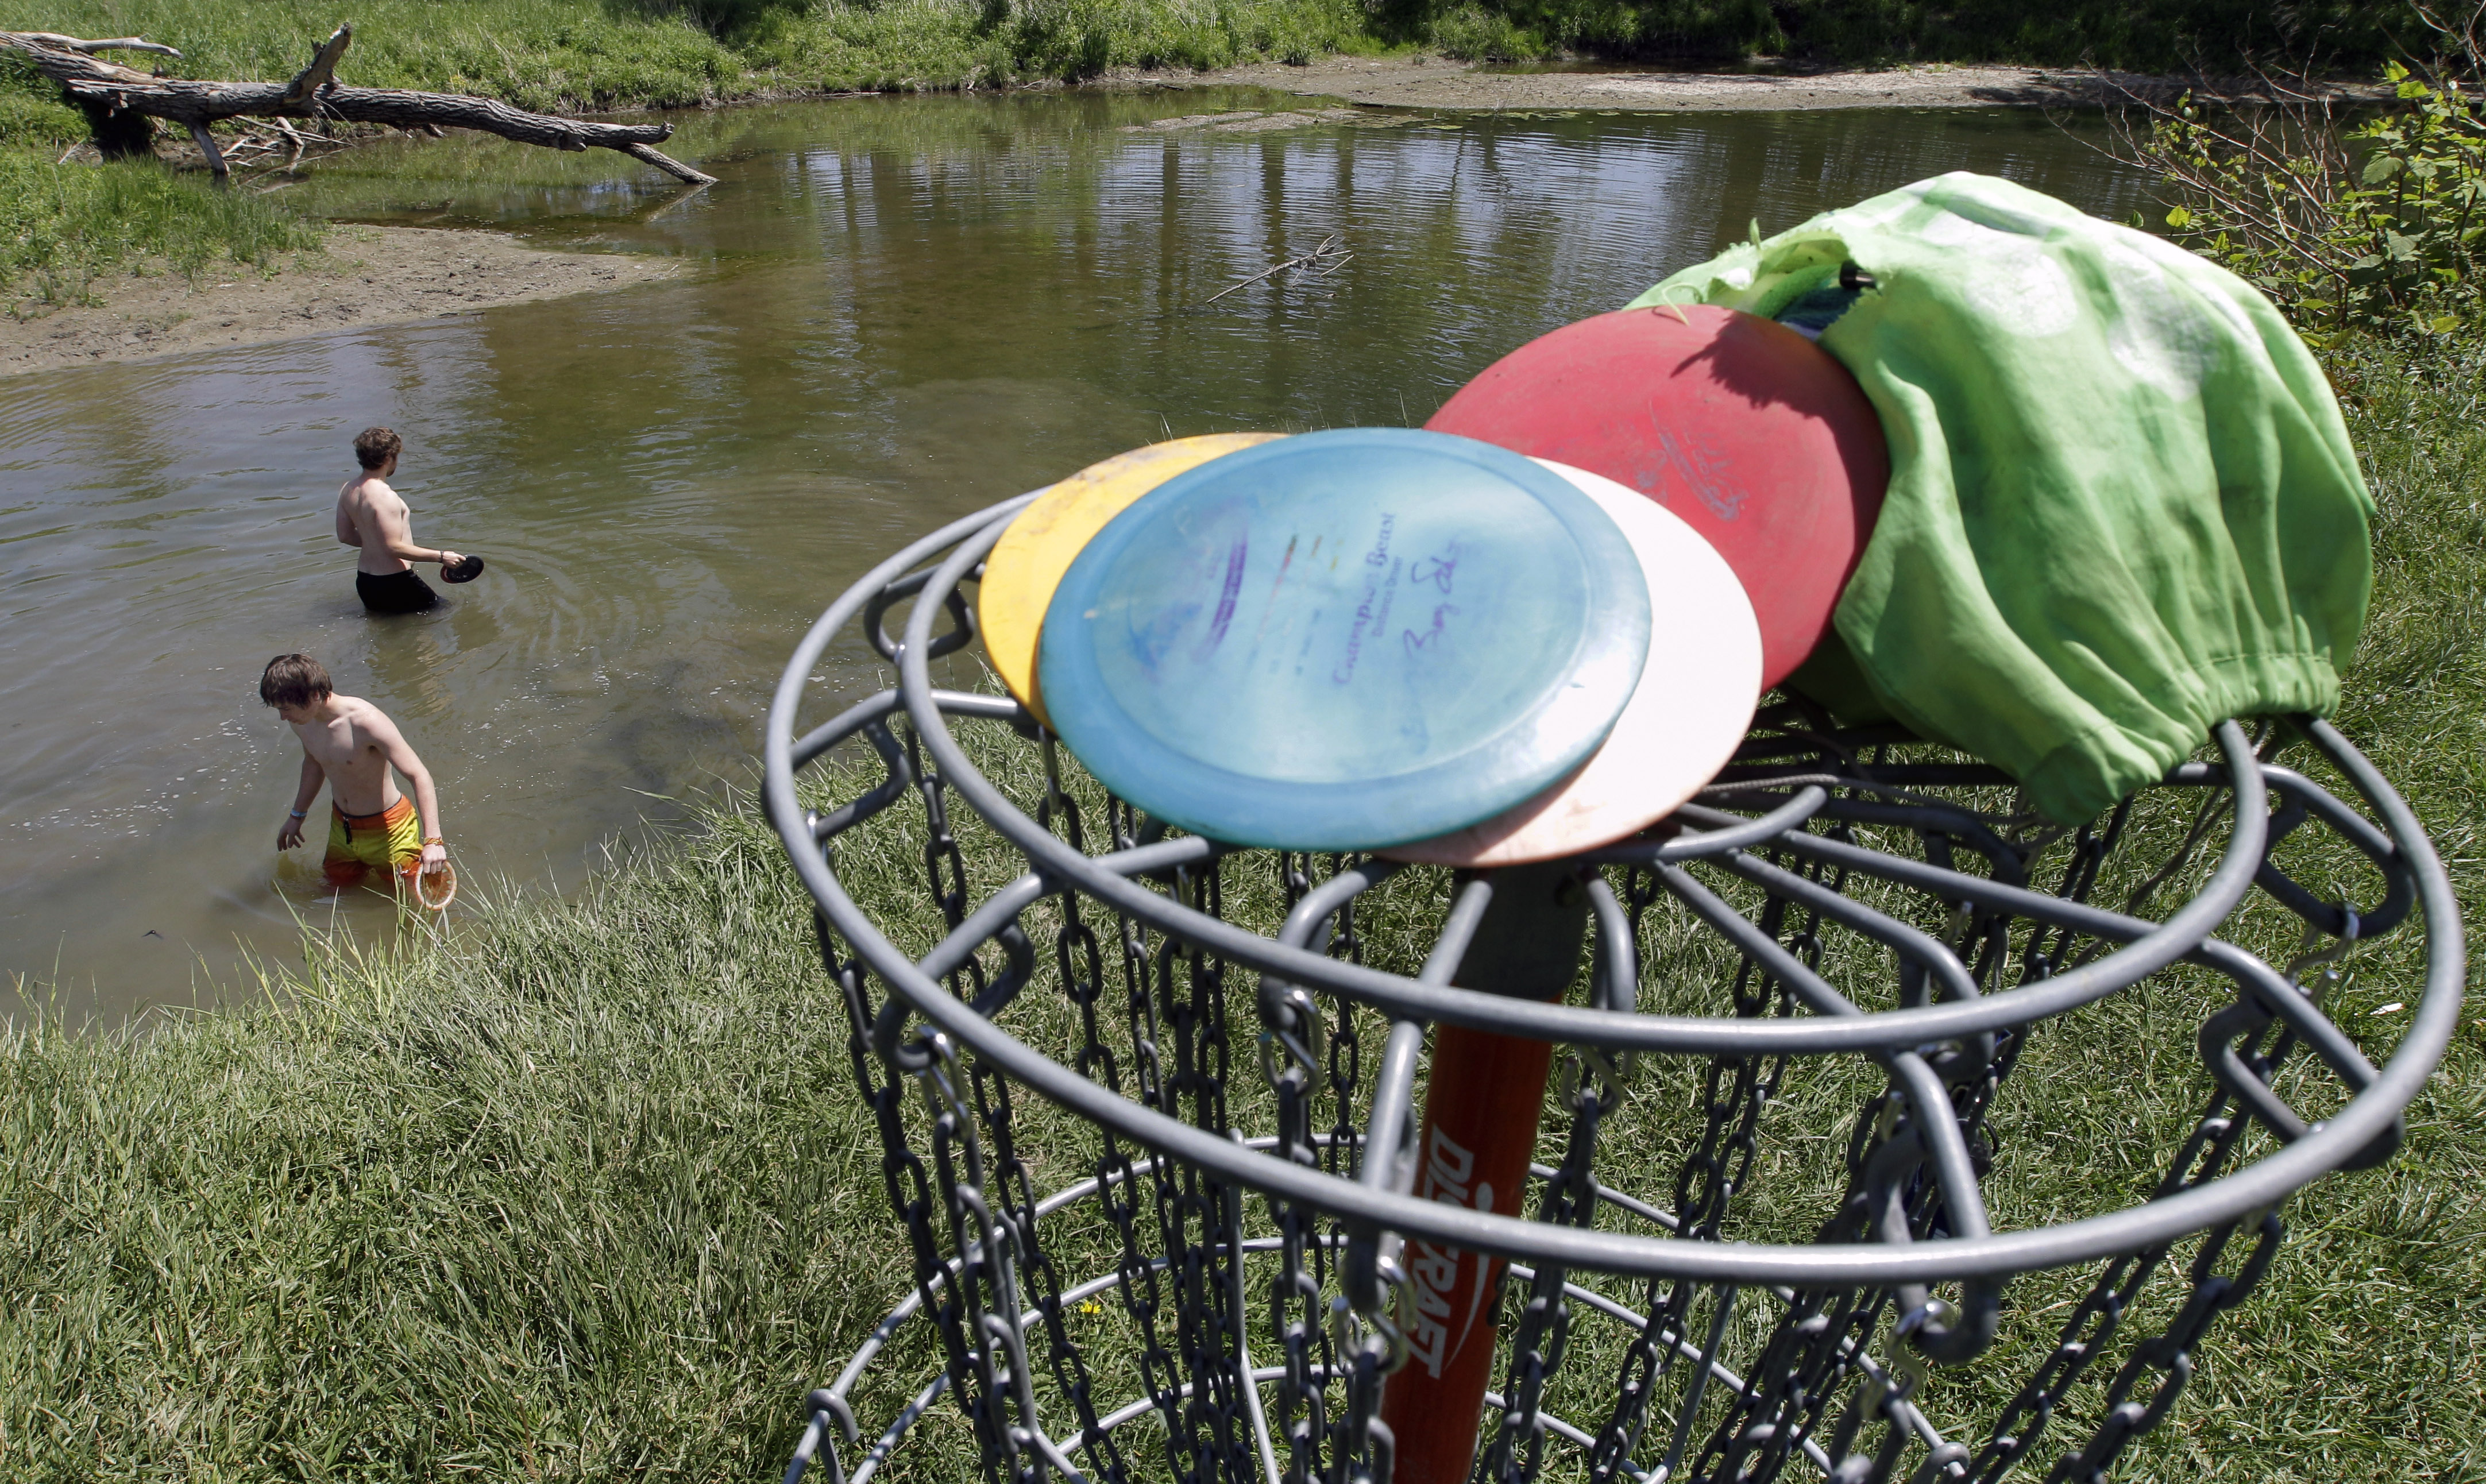 The future of 'golf' may not be on the links